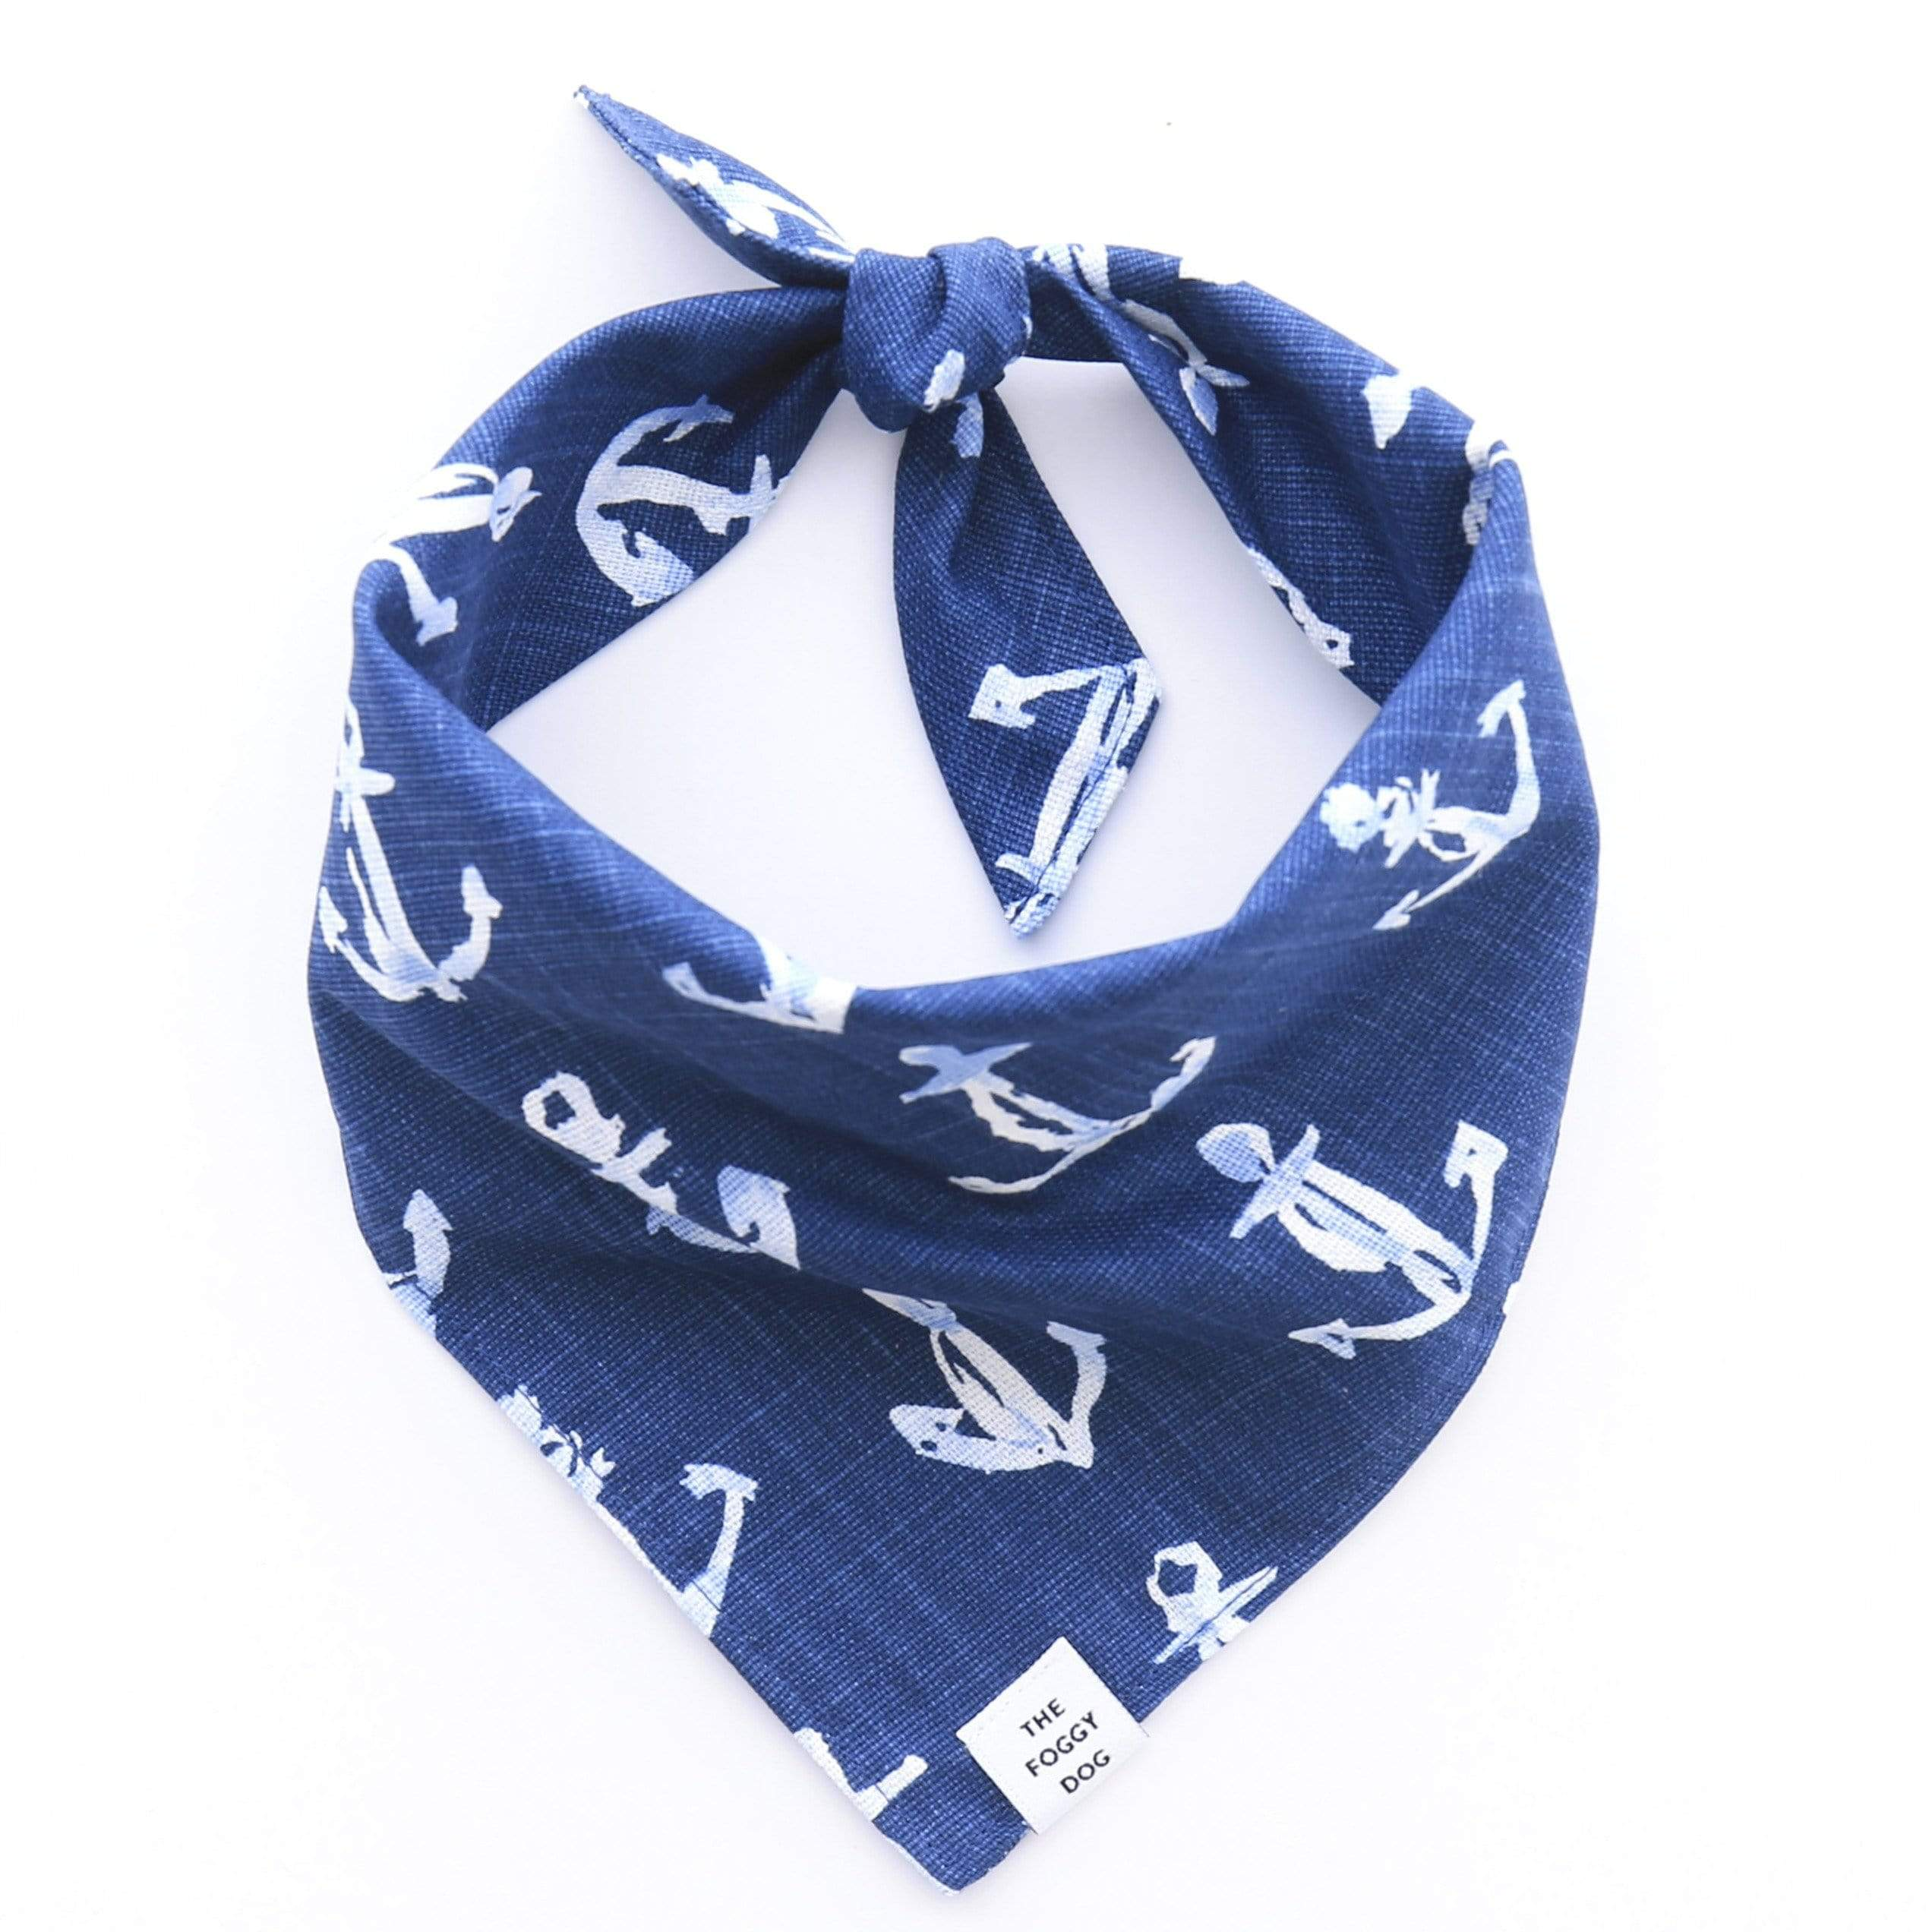 The Foggy Dog Dog Bandana - Down by the Sea